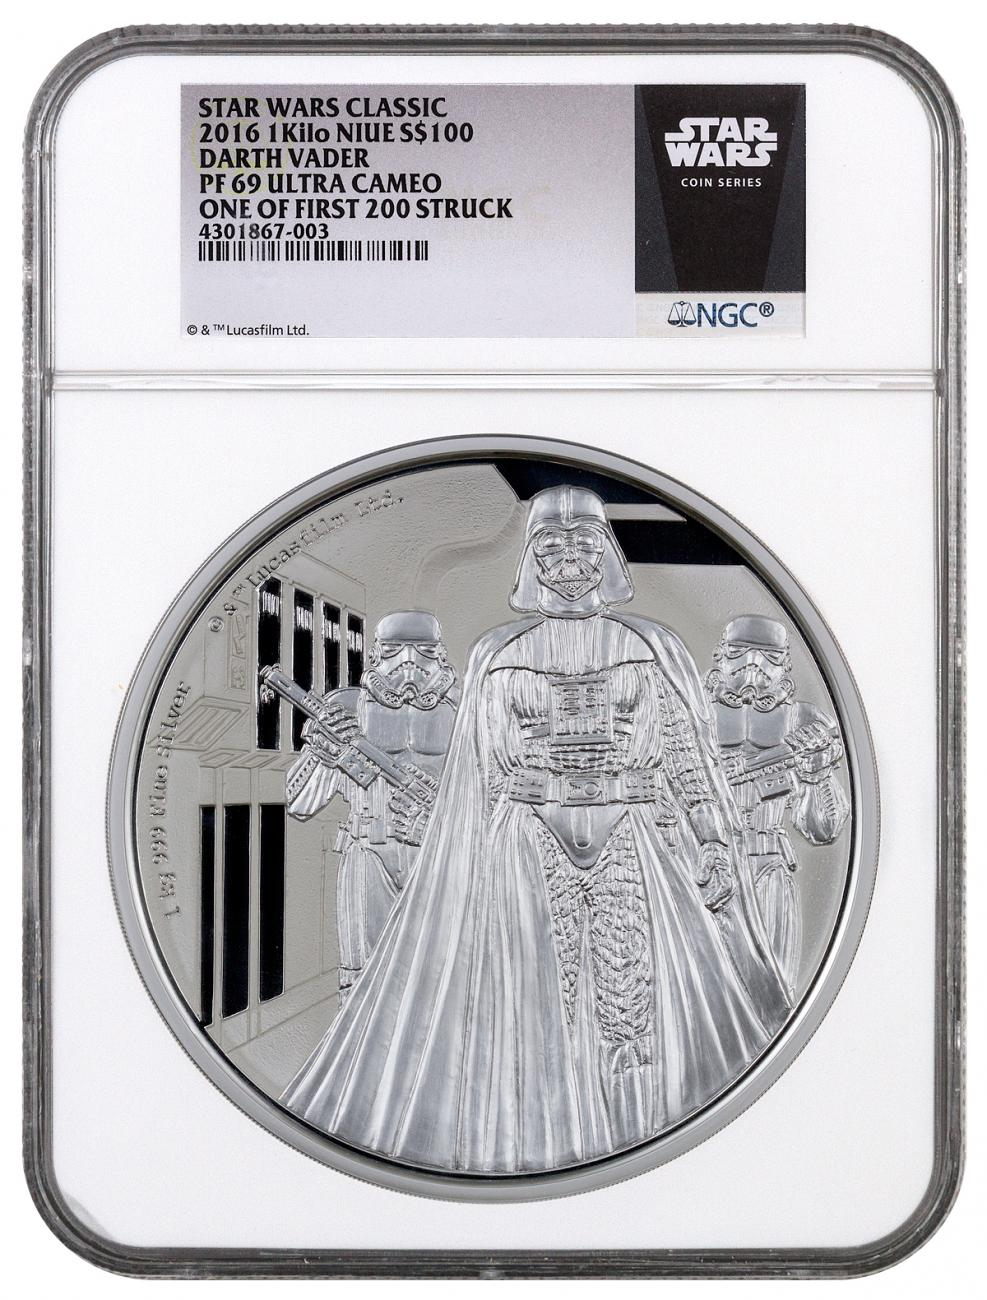 2016 Niue $100 1 Kilo Proof Silver Star Wars Classics Series - Darth Vader - NGC PF69 UC One of First 200 Struck (Exclusive Star Wars Label)